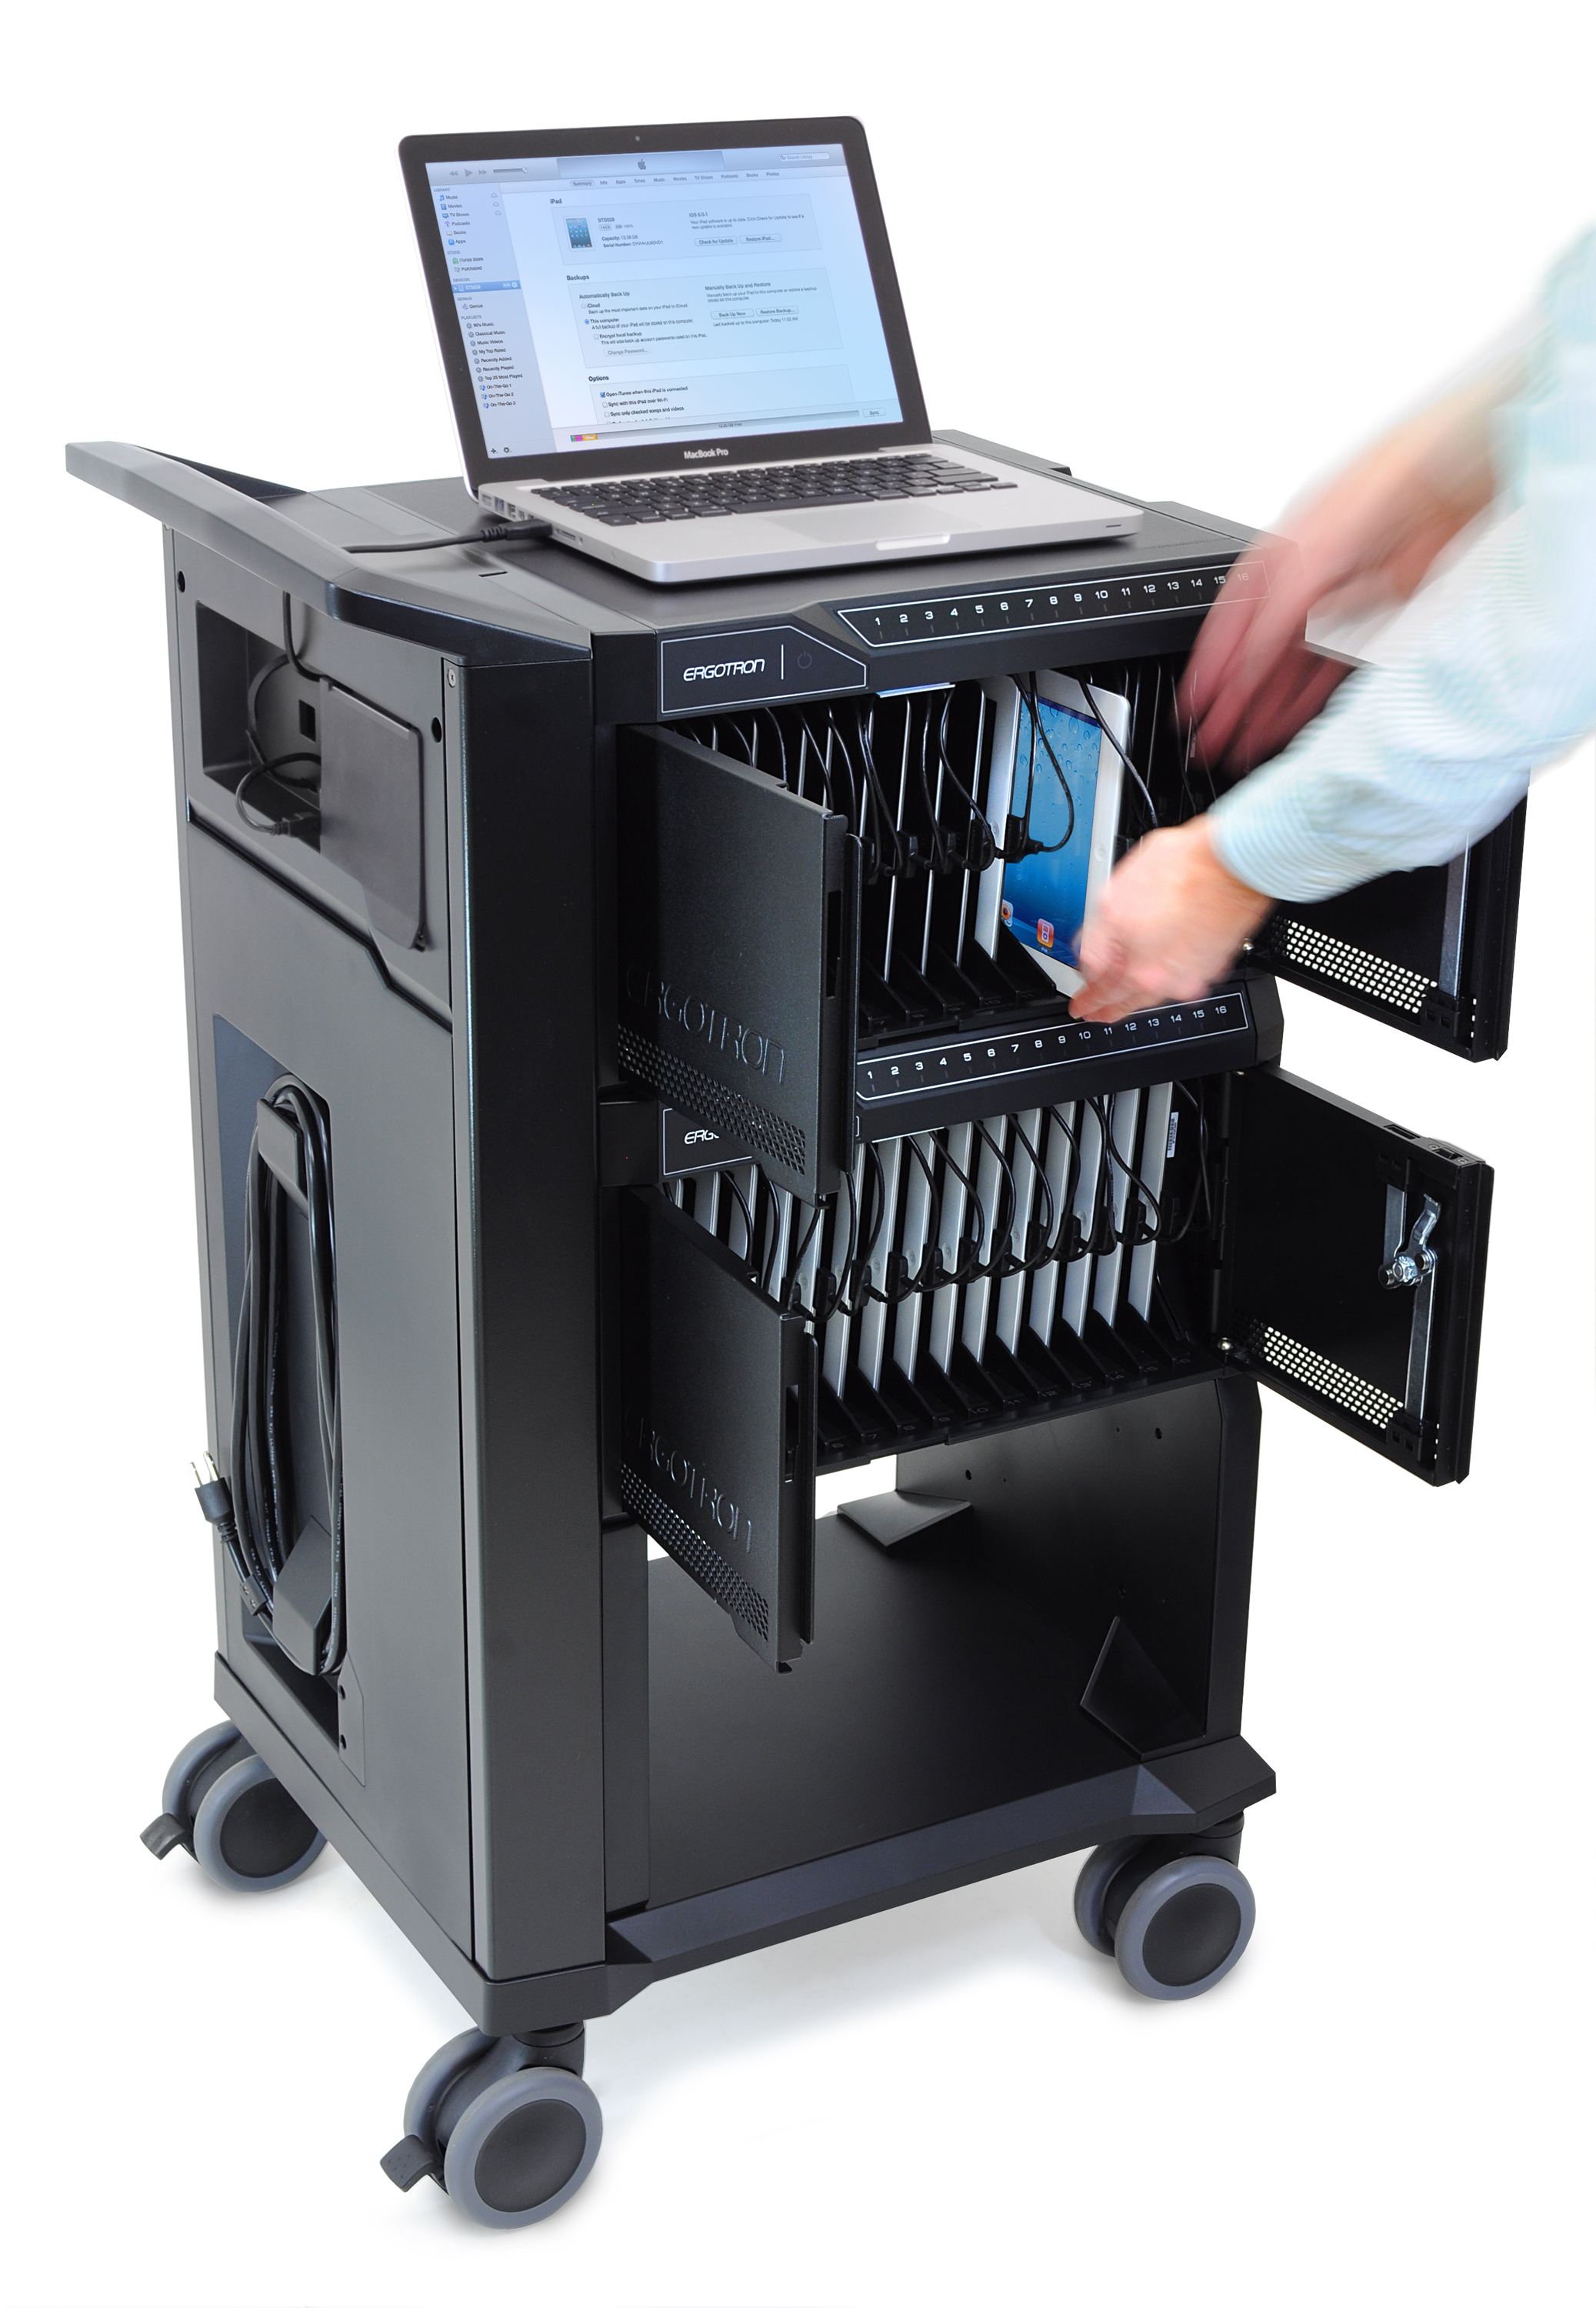 Sync, charge, secure and manage up to 48 tablets with Ergotron's Tablet Management Cart